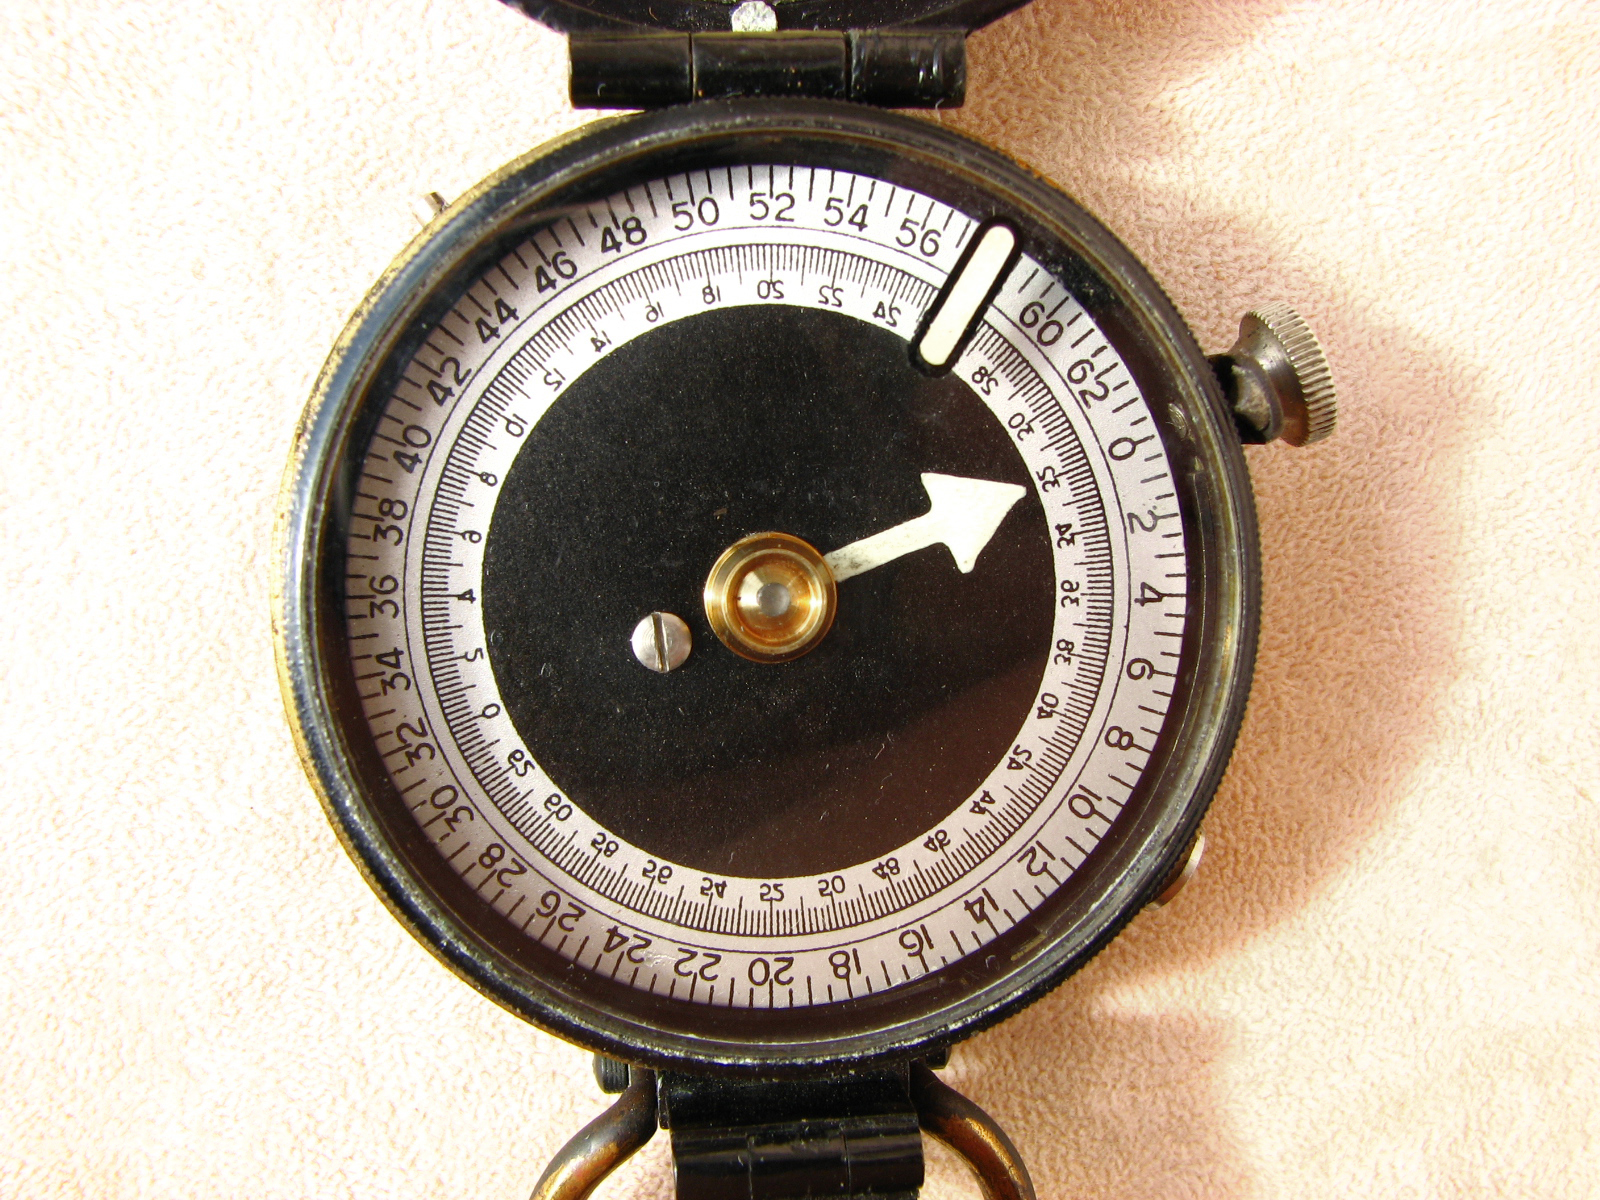 Post WWI Verner's Pattern style MK VIII Italian marching compass with mils dial